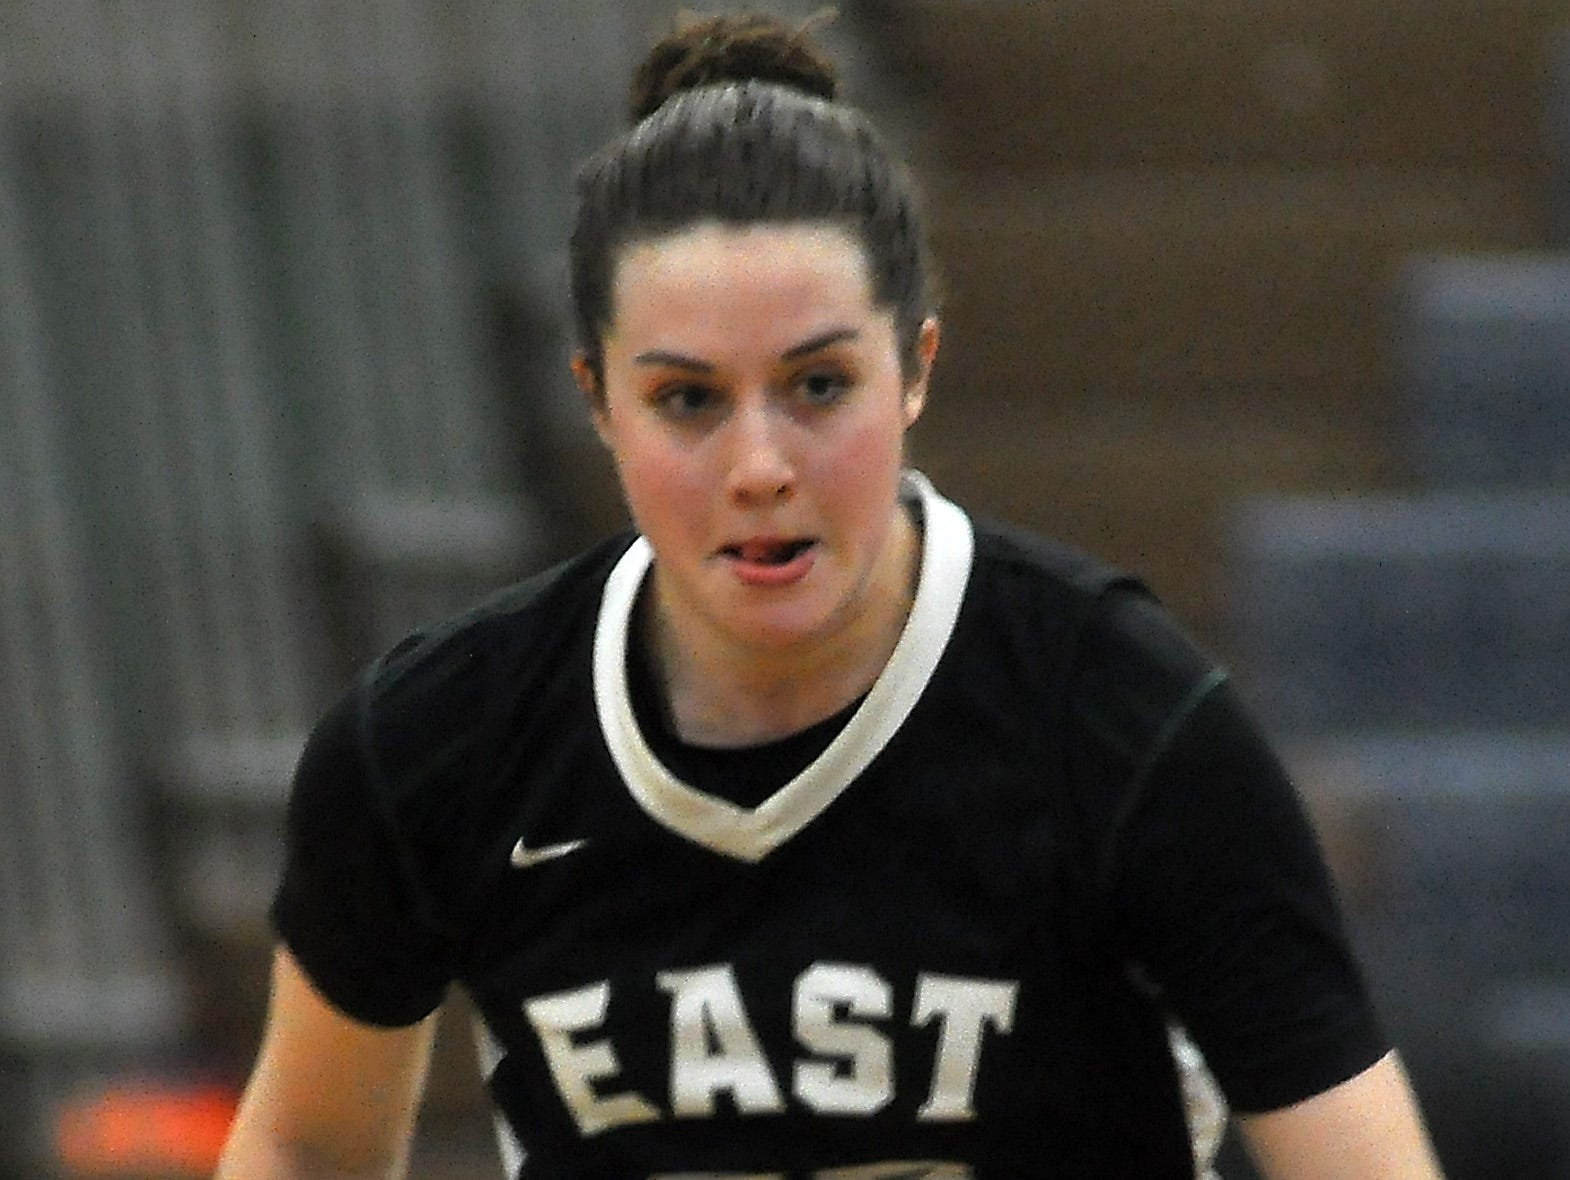 South Lyon East's Gabi Bird rewrote the school record books and finished her career at the 2015 All-Area Player of the Year.